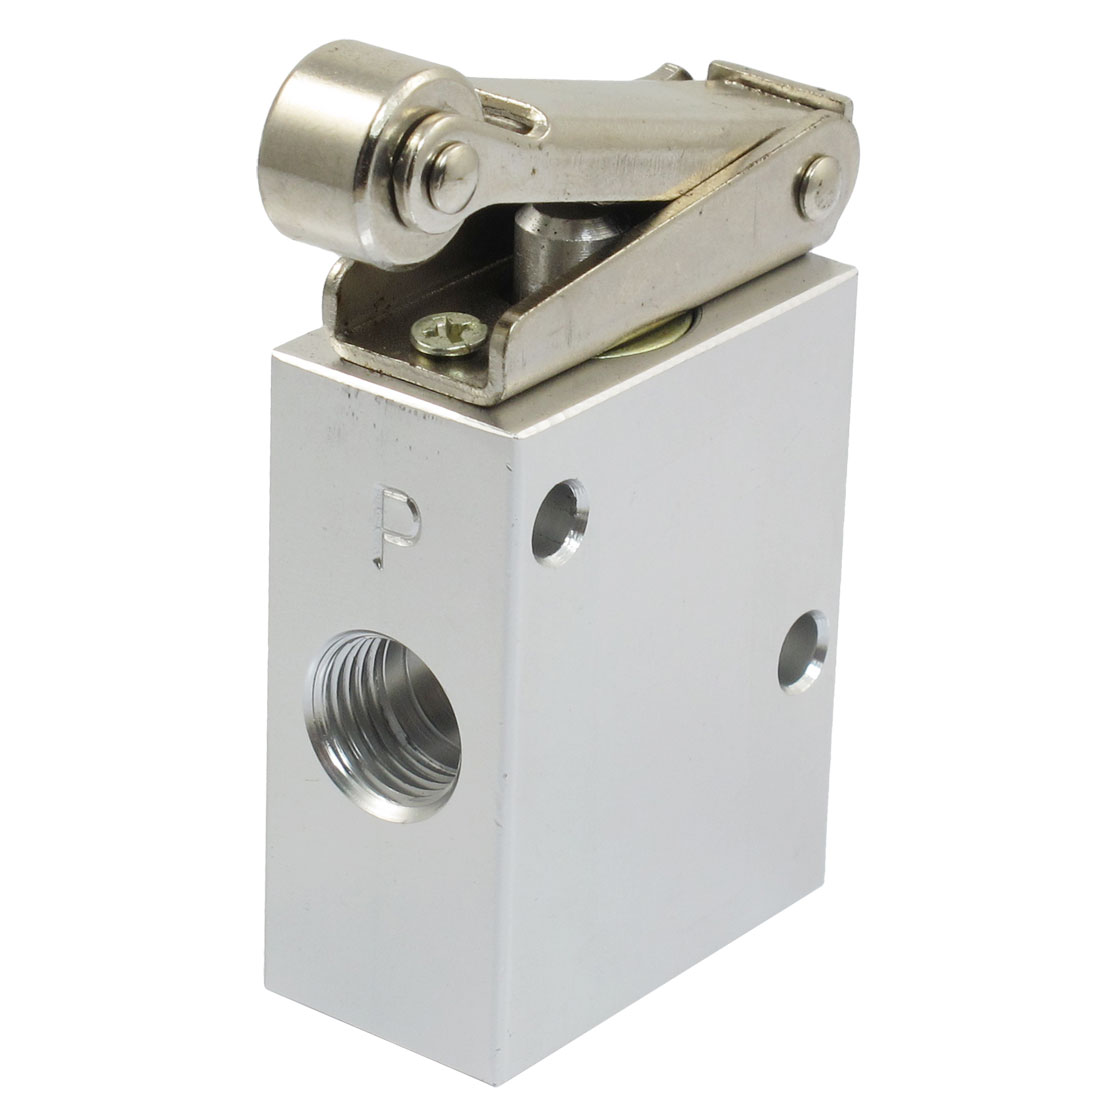 JM-07 1/4 PT Thread 2 Position 3 Way Roller Type Mechanical Pneumatic Valve